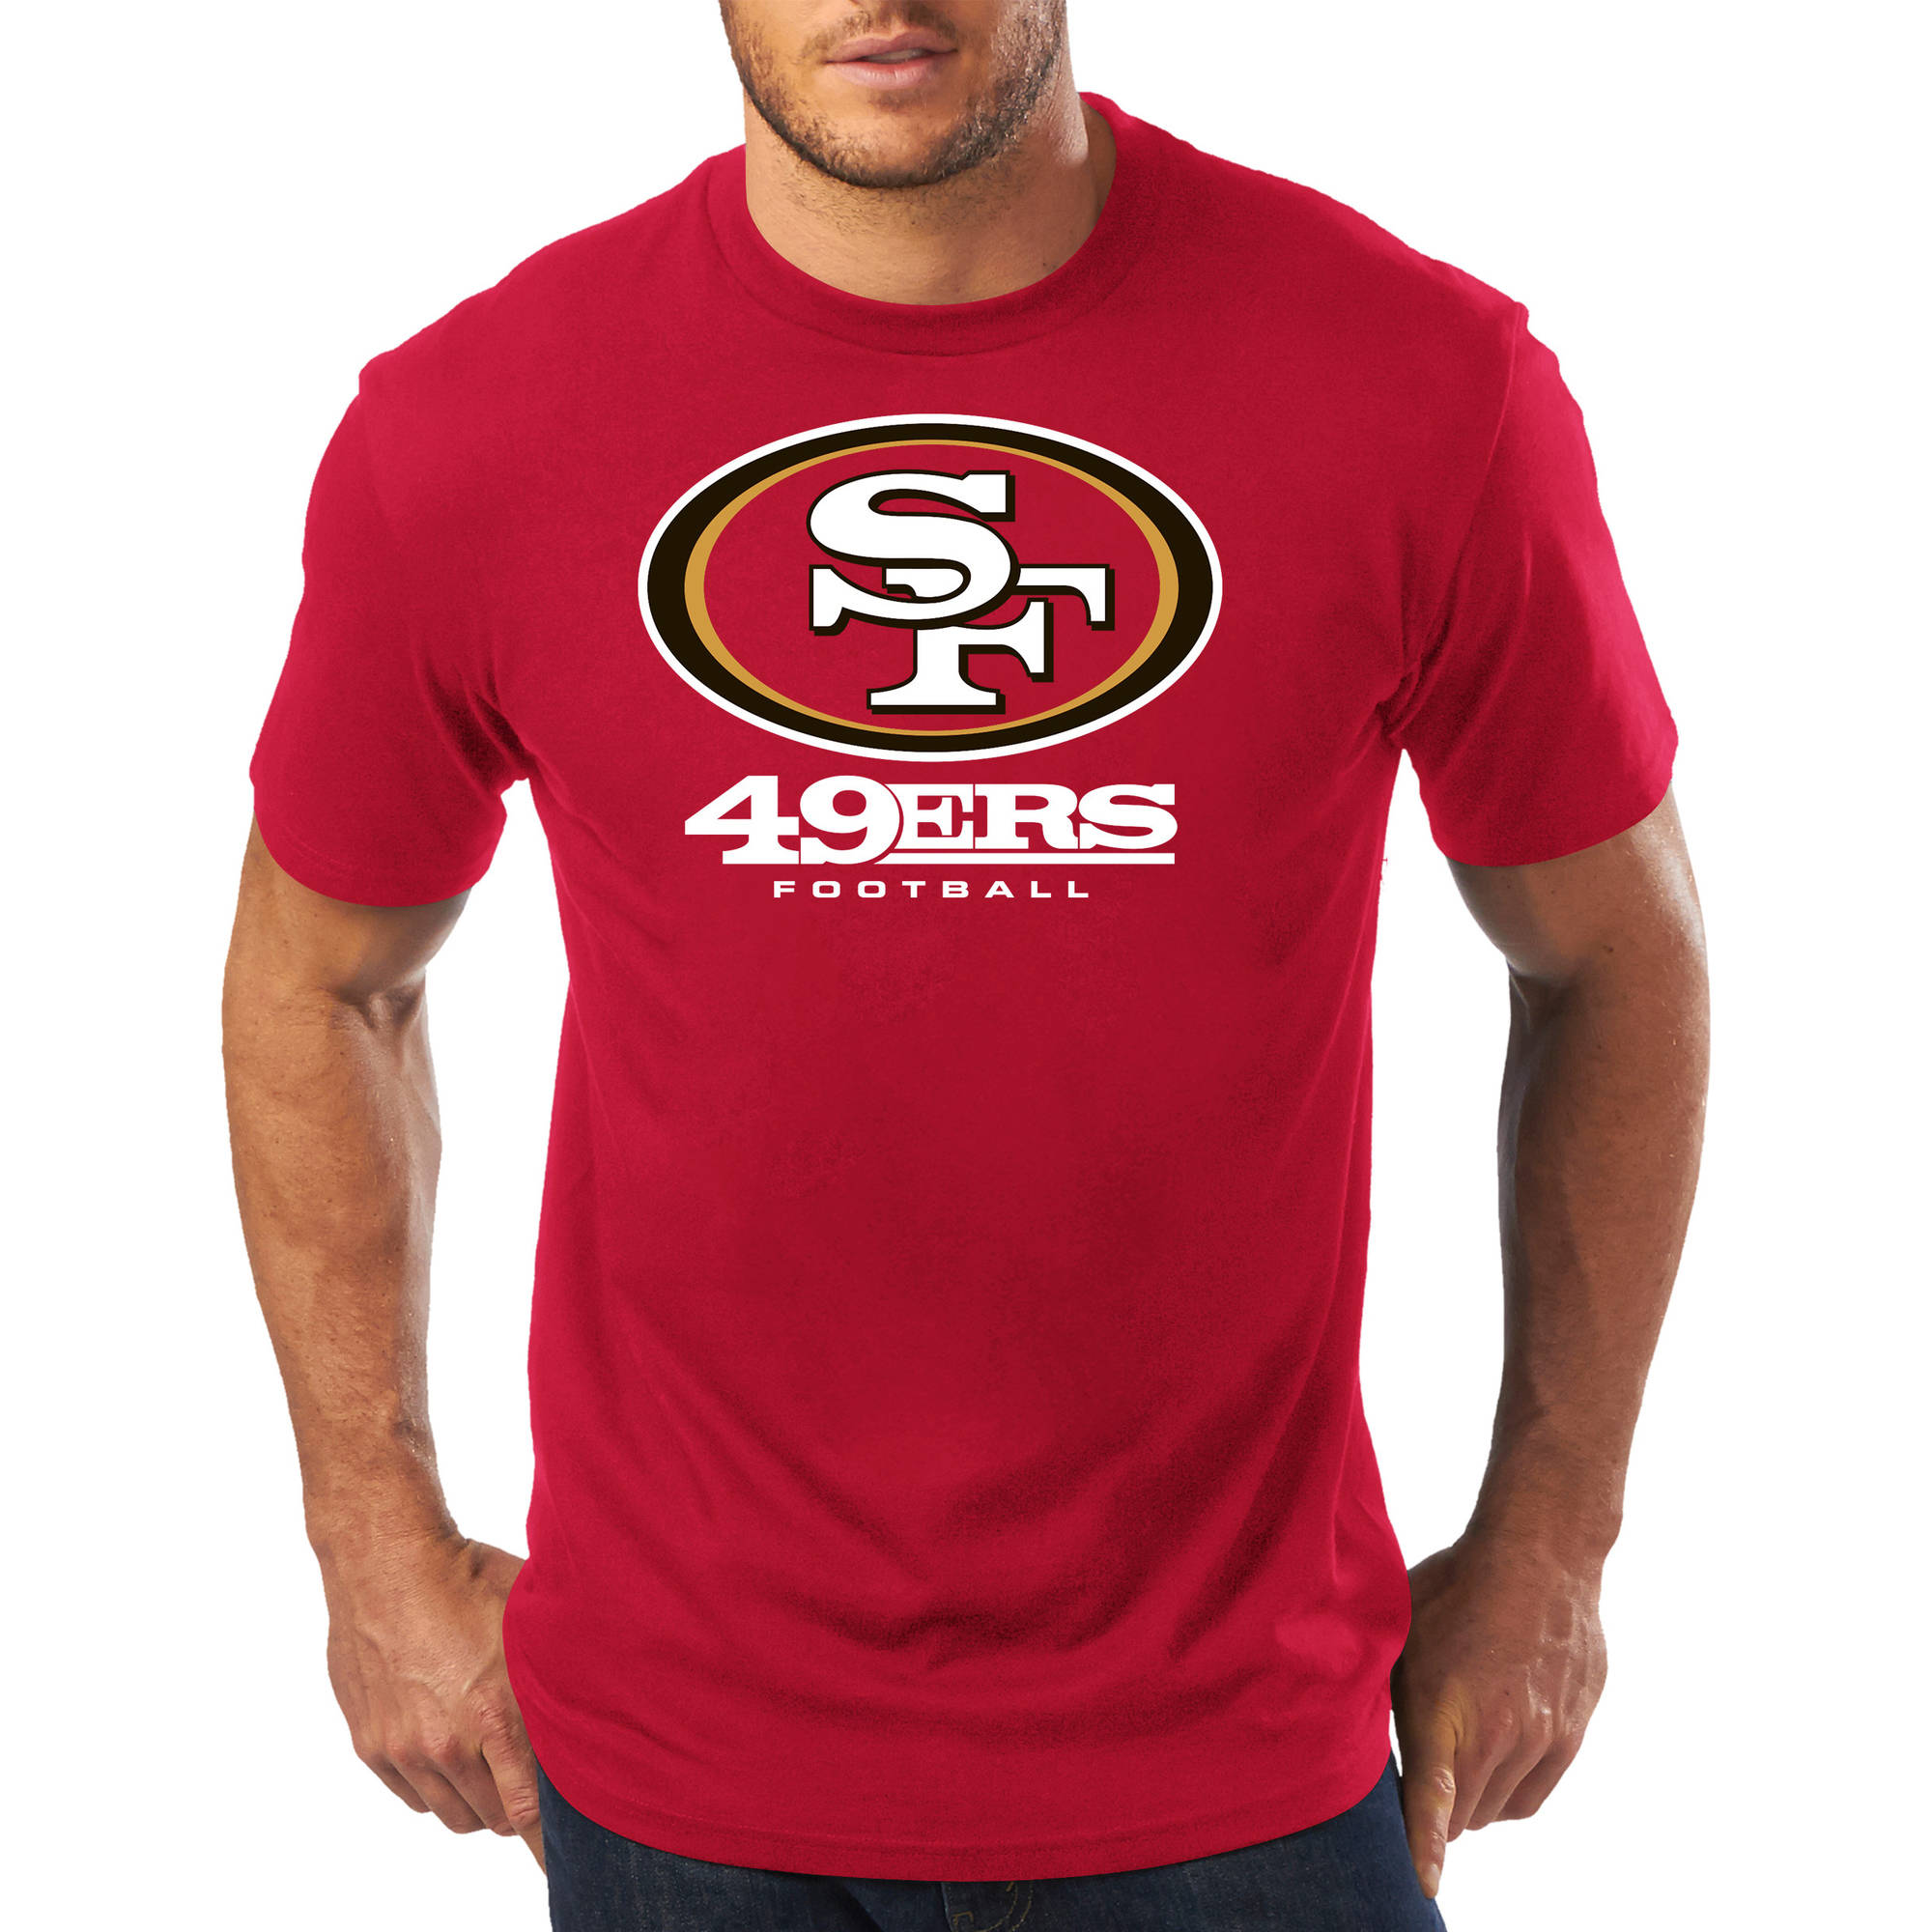 Big Men's NFL San Francisco 49Ers Short Sleeve Tee